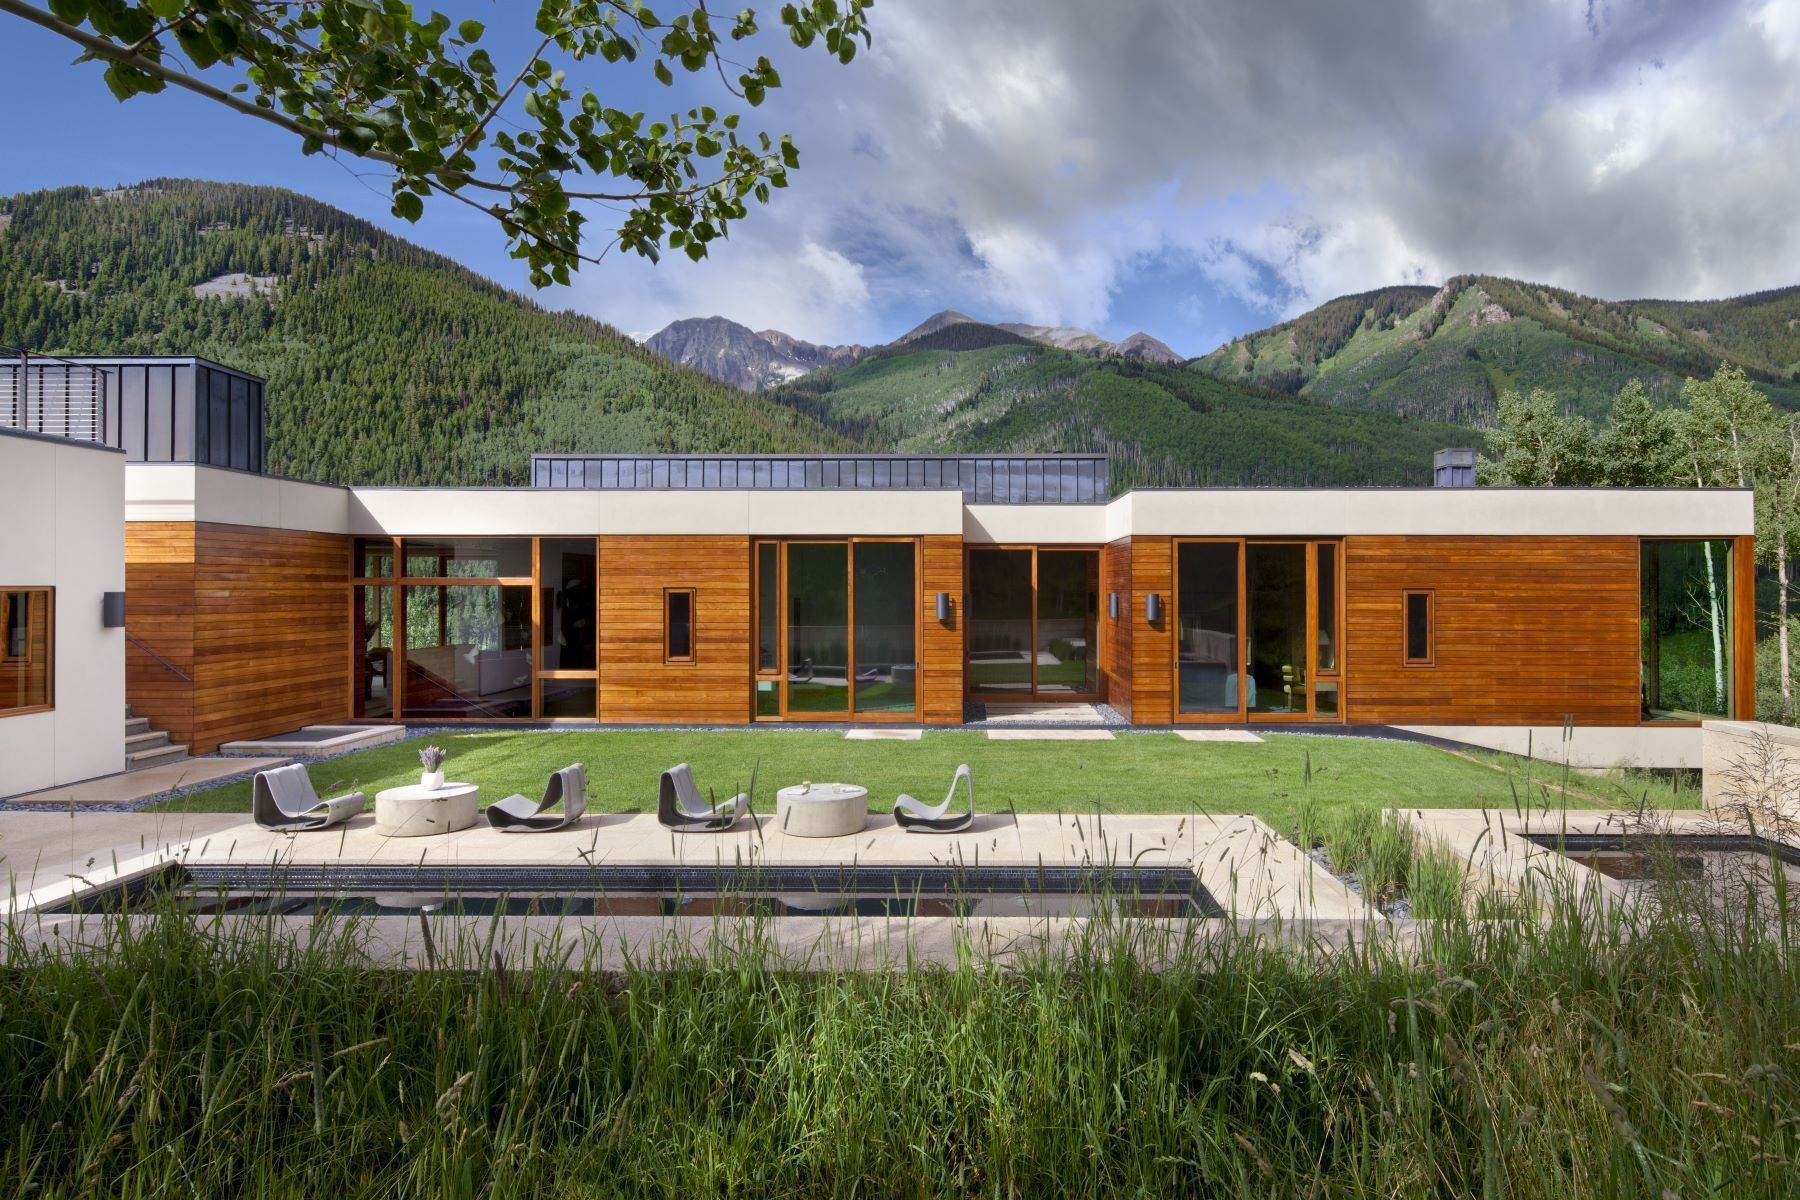 Single Family Homes for Sale at Exquisite Modern Sanctuary 8720/8716 Castle Creek Road Aspen, Colorado 81611 United States